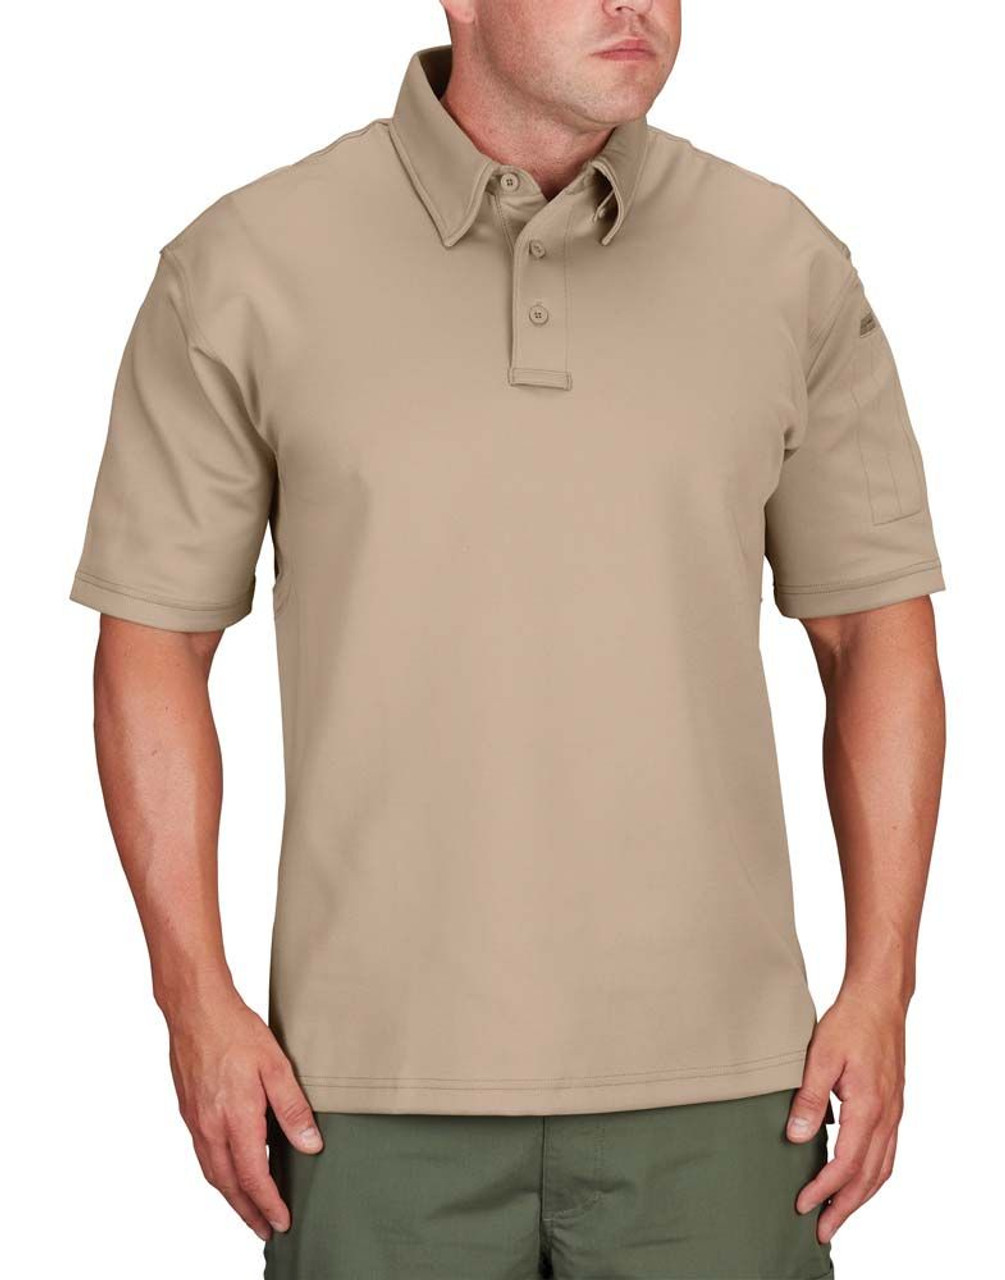 Propper  F5341-72 Men's I.C.E.® Tactical Polo, Short Sleeve, Casual/Uniform, Polyester/Spandex, includes Shoulder Mic Loop